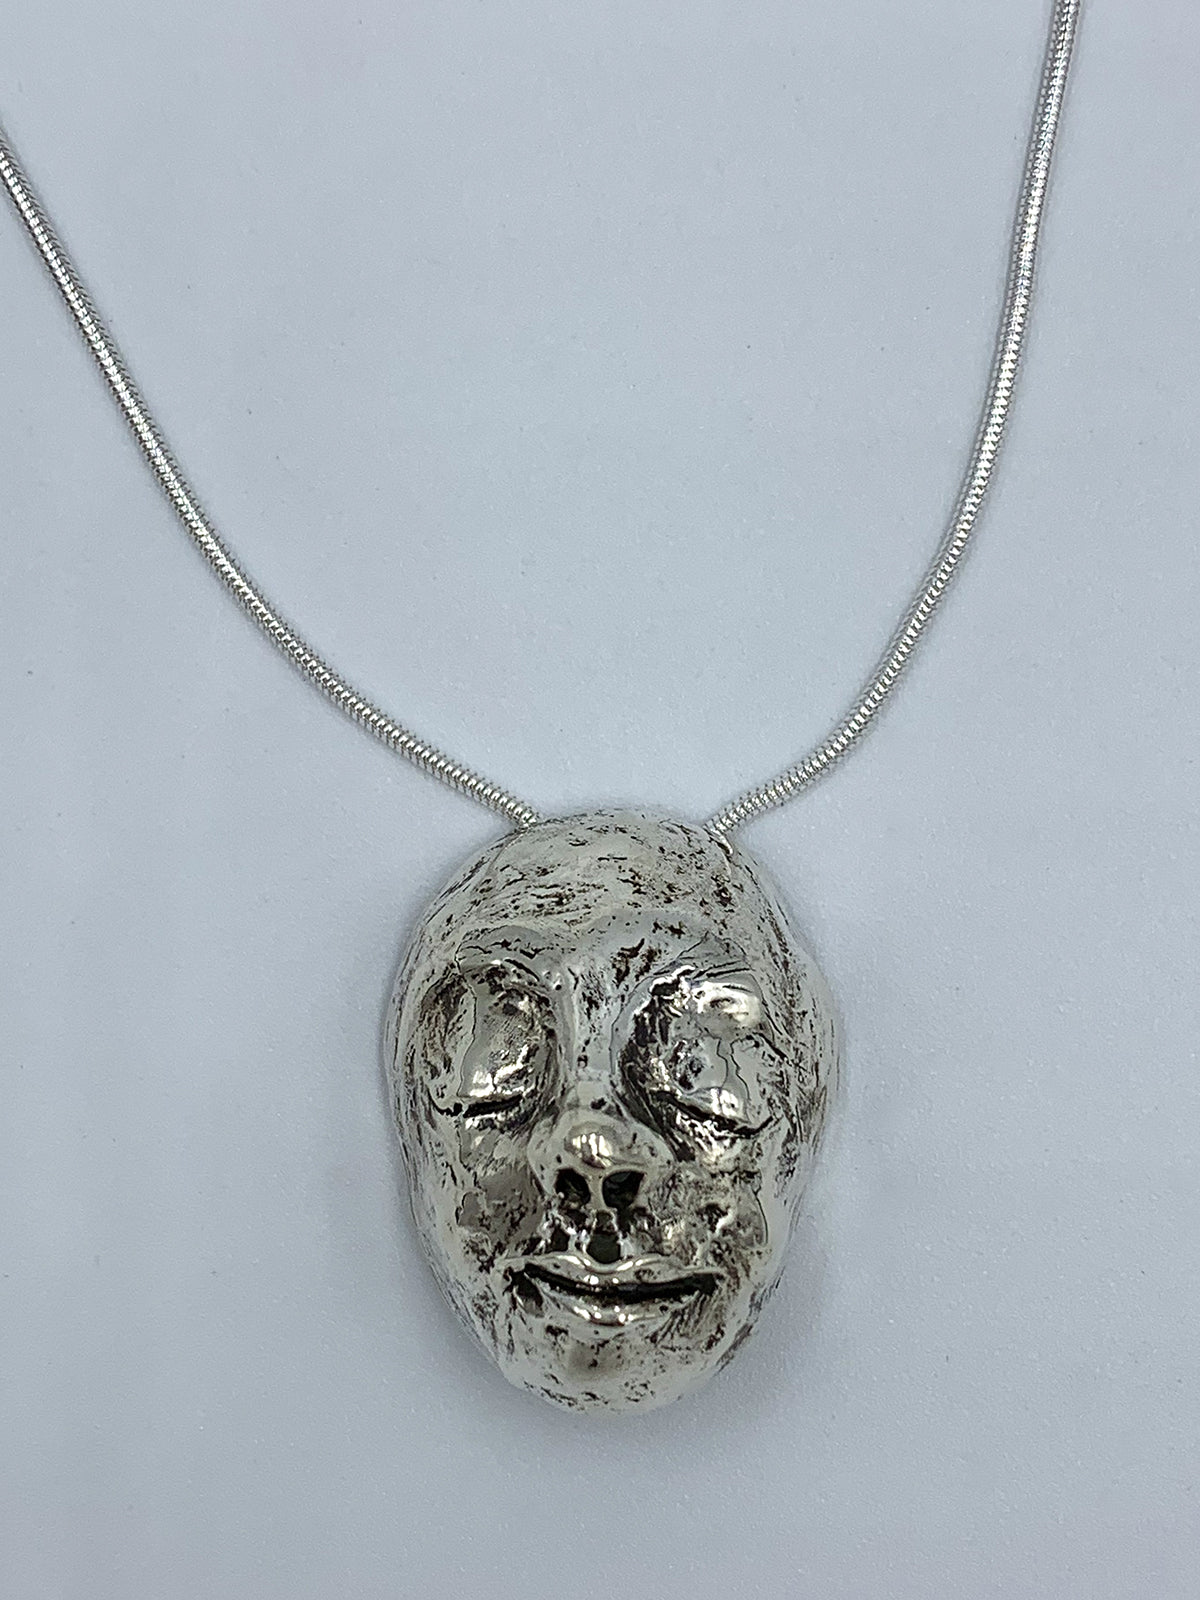 Sleeping Mask Pendent - Sterling Silver - Holly Wilson